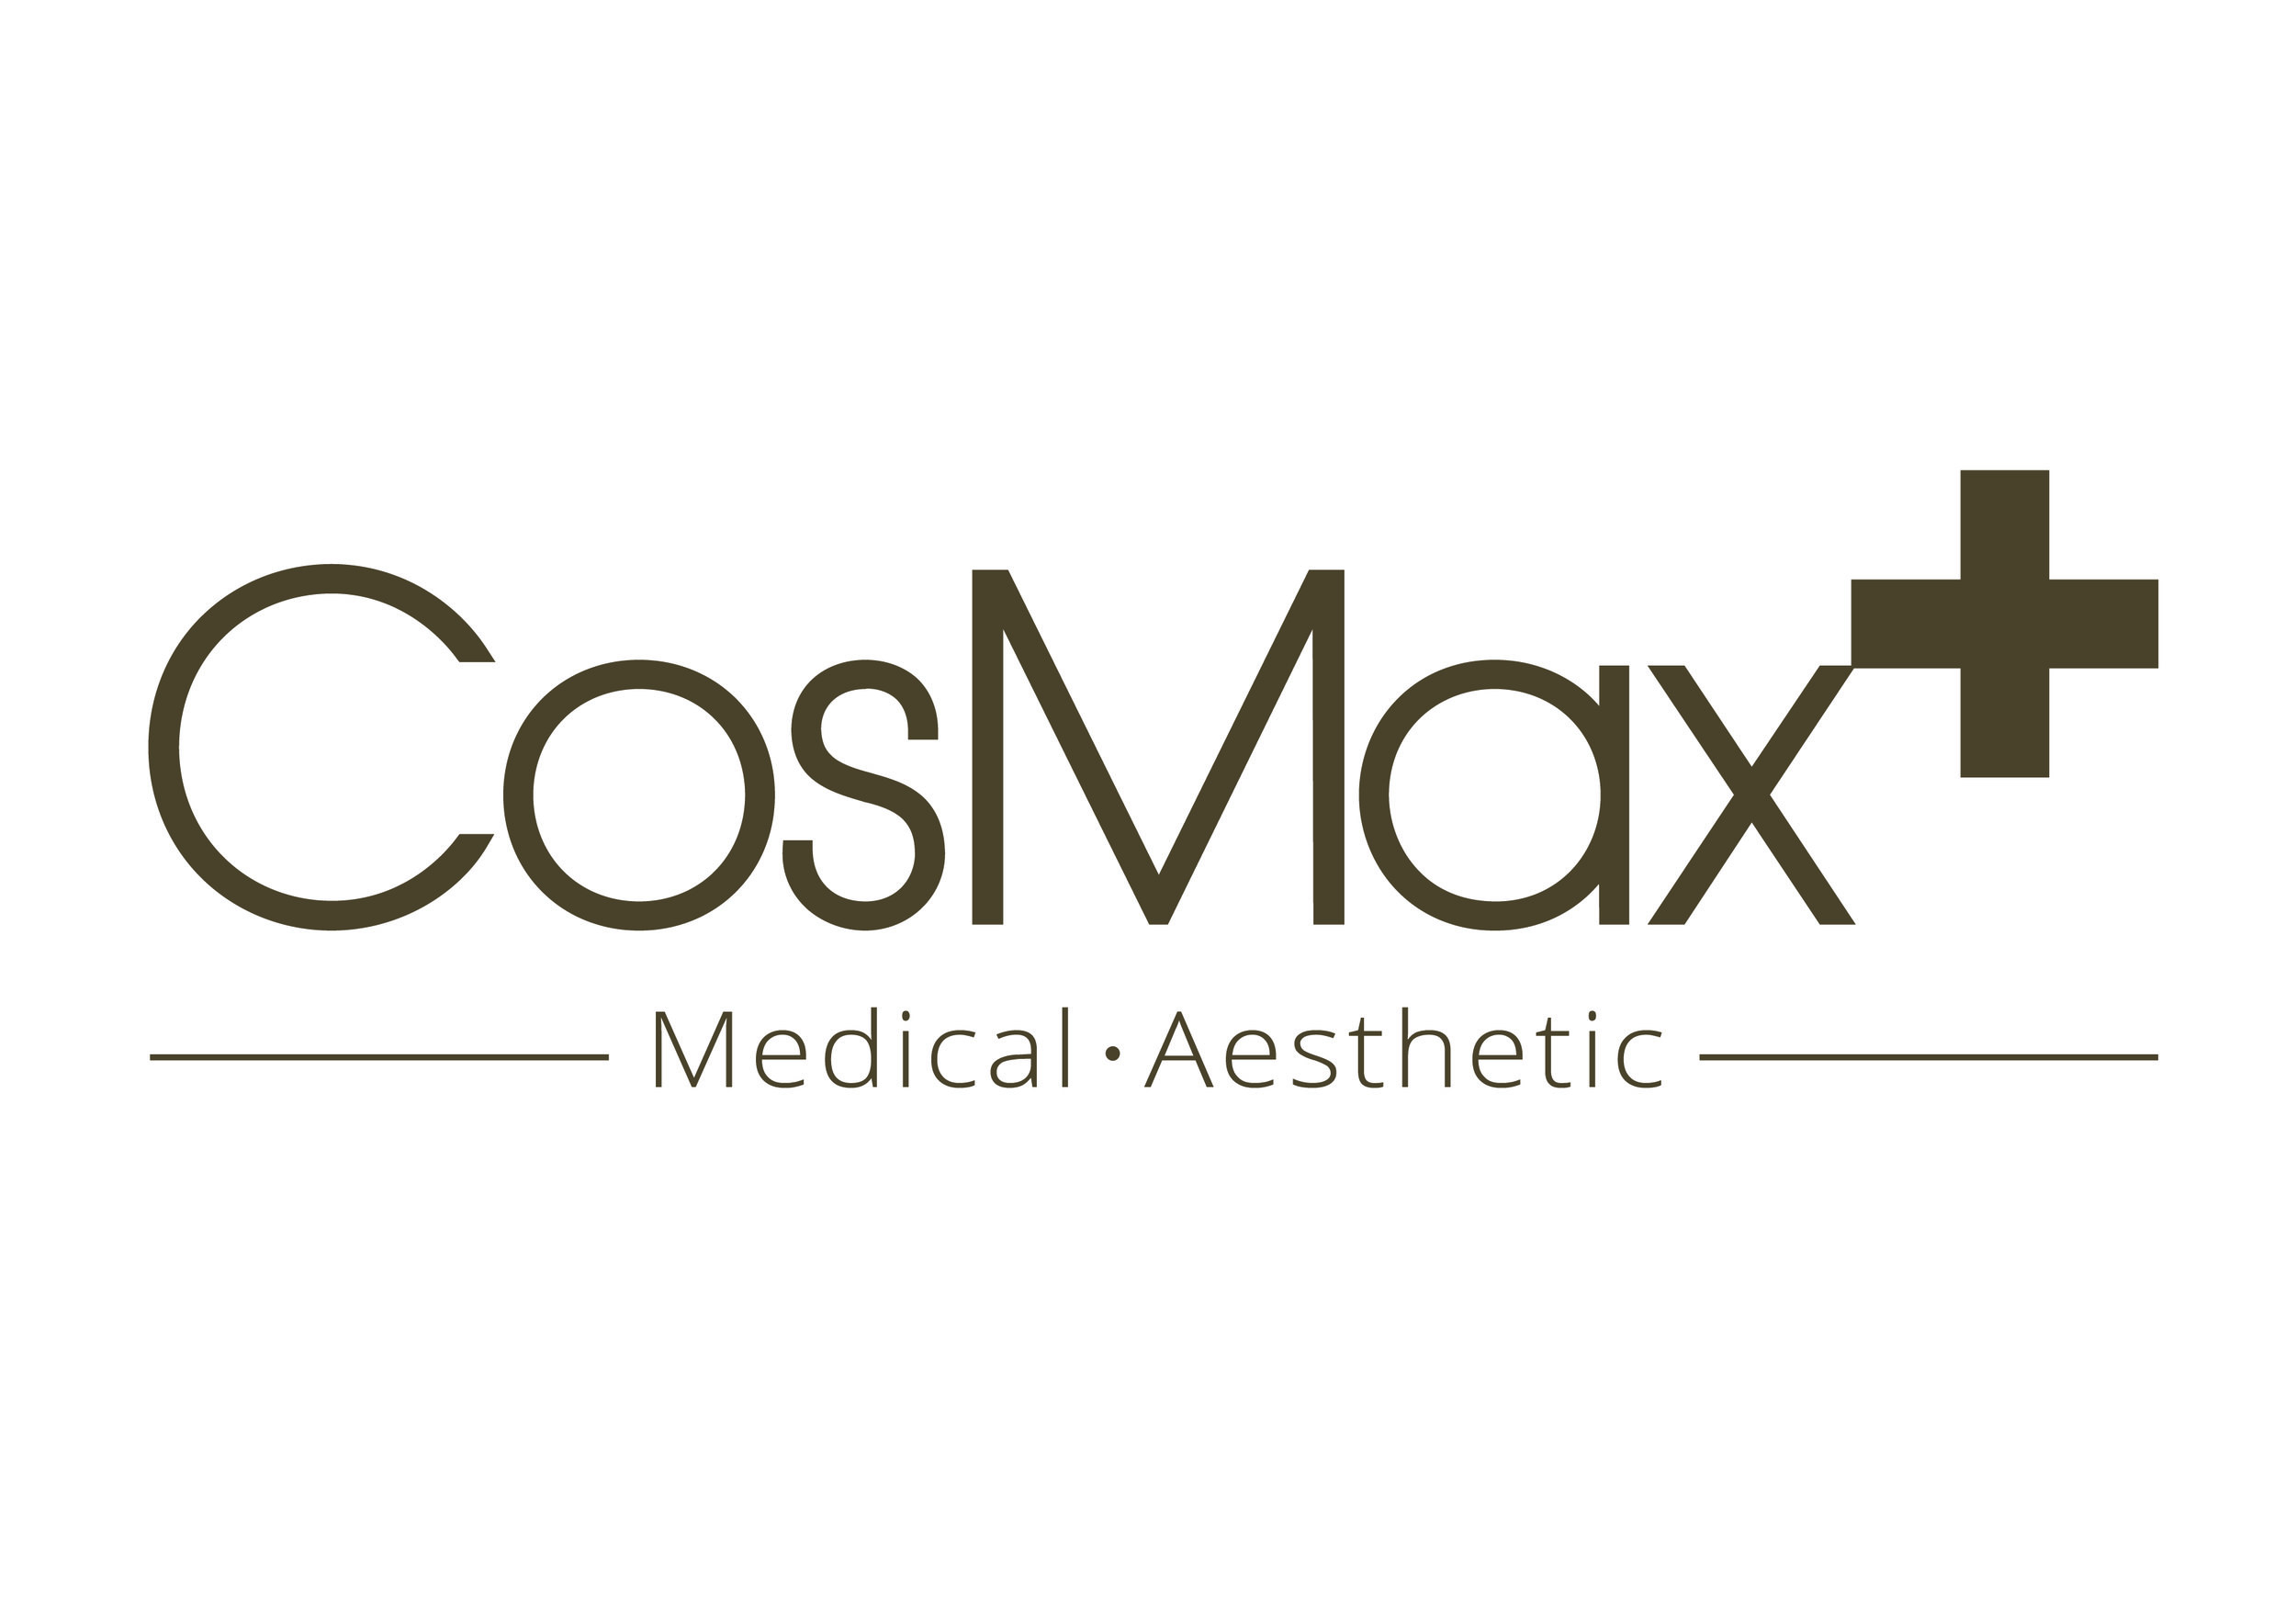 CosMax Logo-Medical Aesthetic-7532C-01.jpg